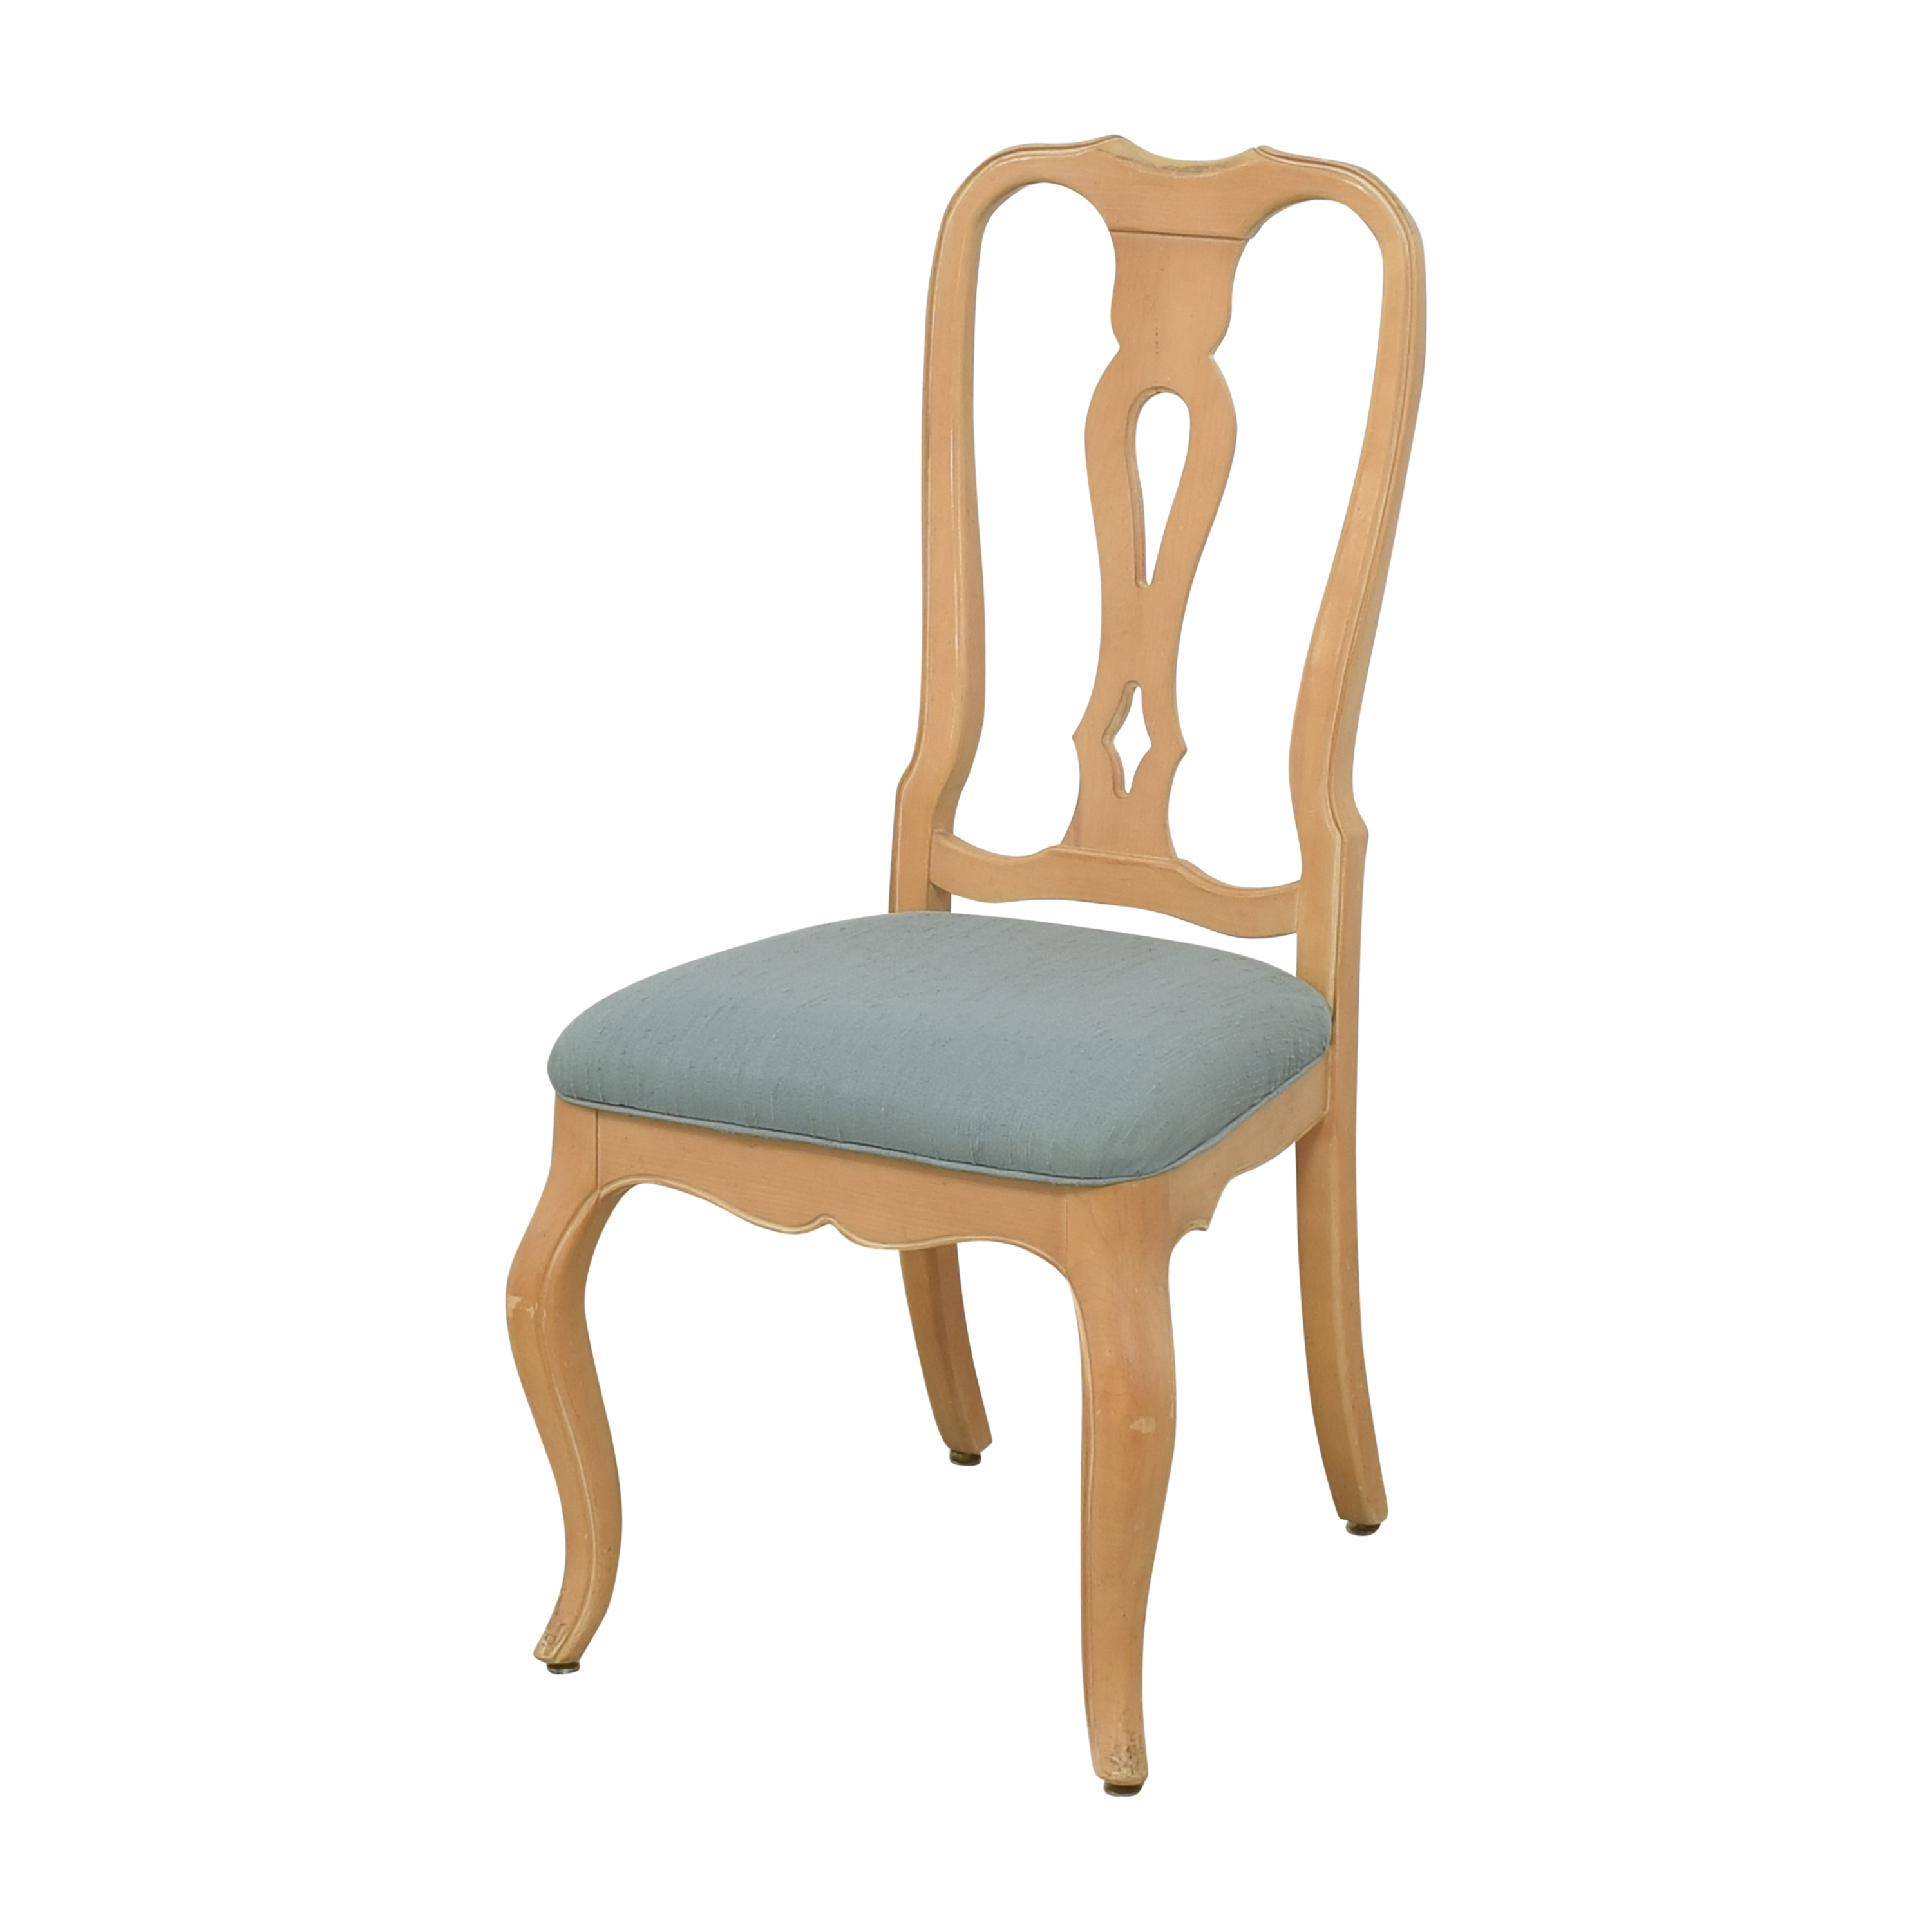 Ethan Allen Ethan Allen Upholstered Dining Chairs used